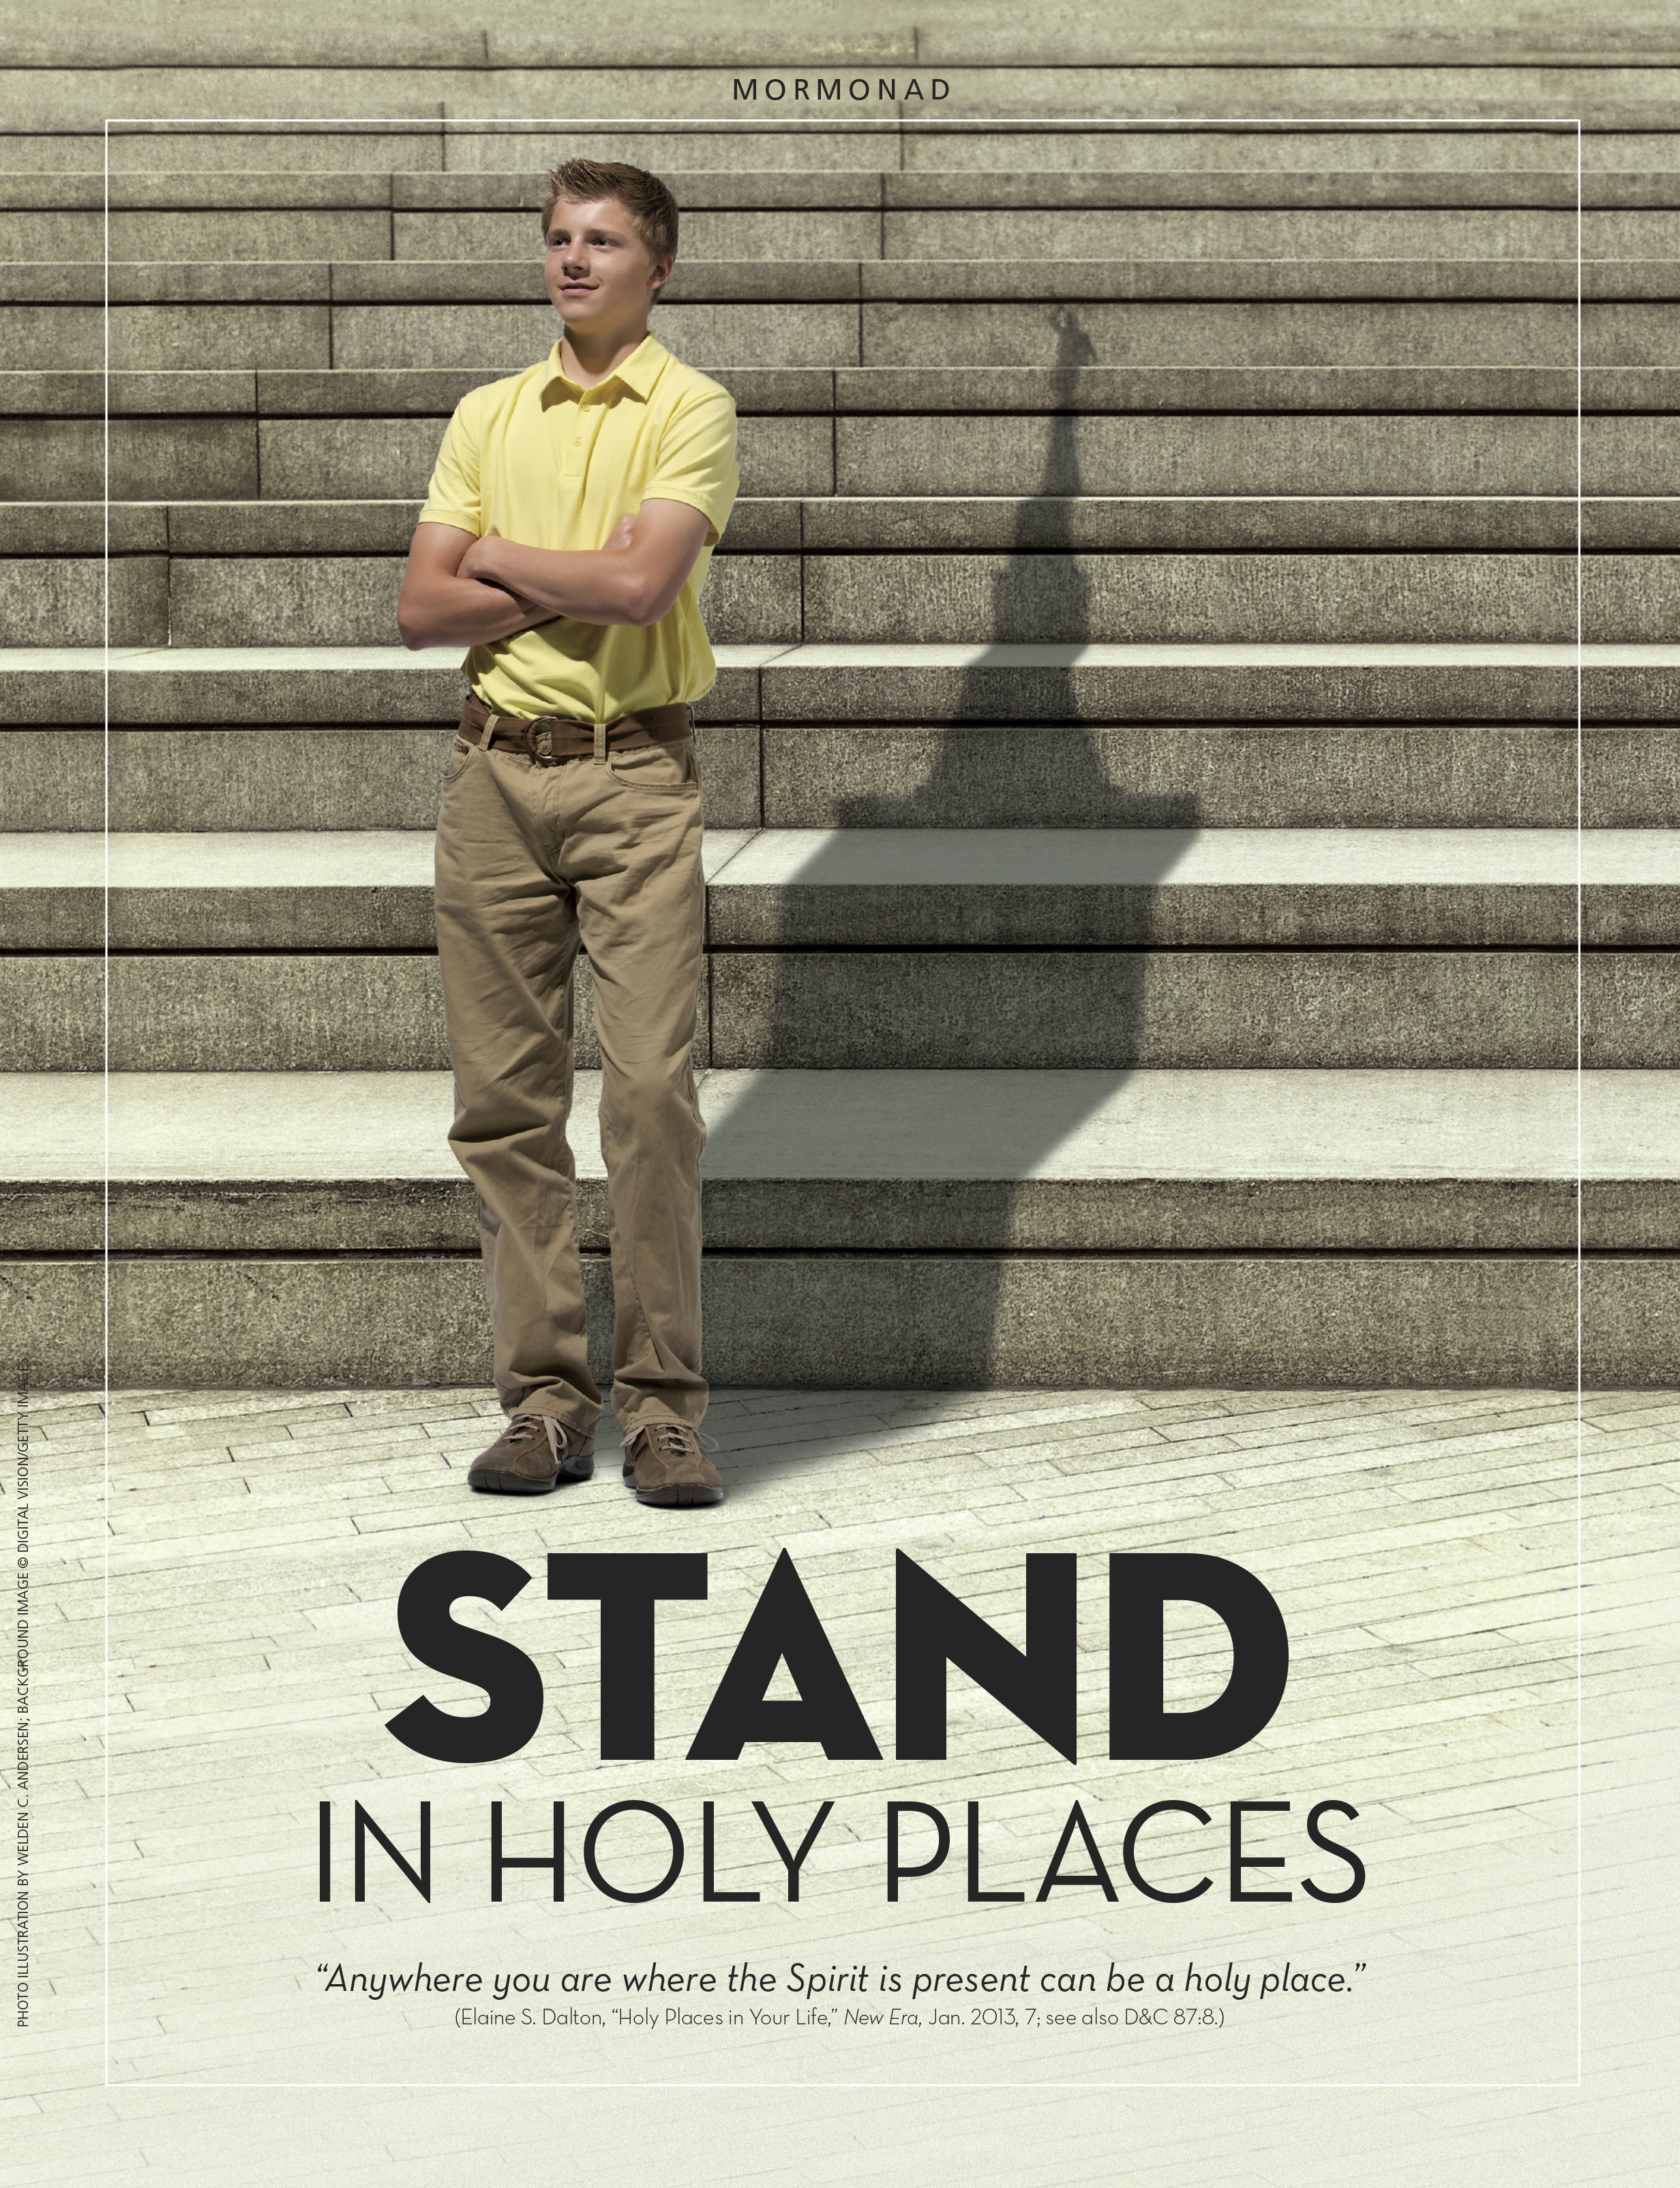 """Stand in Holy Places. """"Anywhere you are where the Spirit is present can be a holy place."""" (Elaine S. Dalton, """"Holy Places in Your Life,"""" New Era, Jan. 2013, 7; see also D&C 87:8.) Jan. 2013 © undefined ipCode 1."""